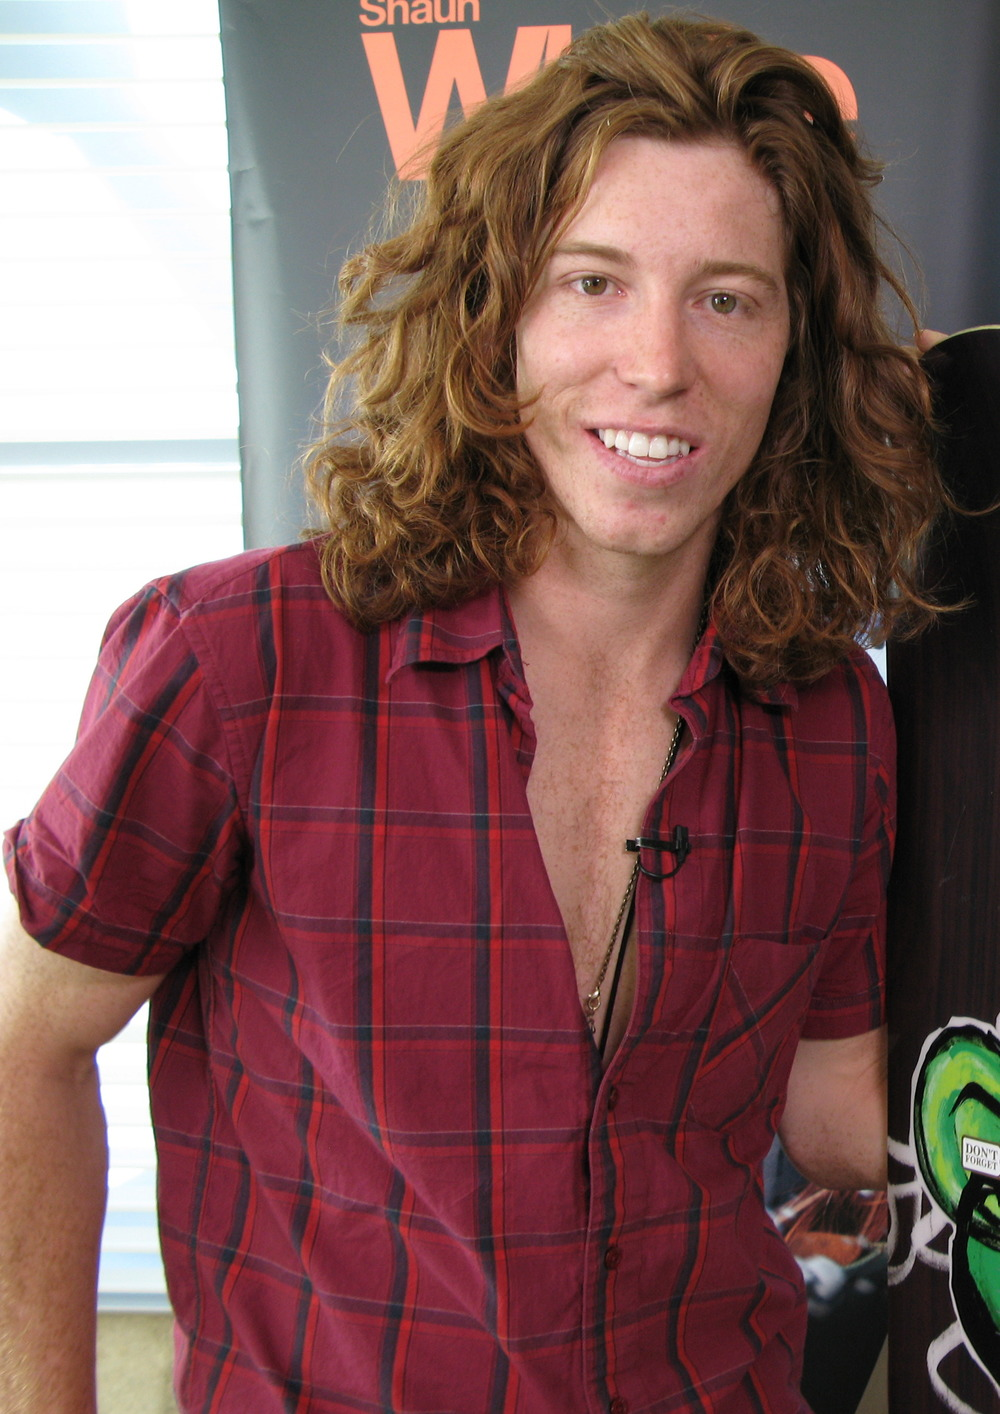 Double gold medalist Shaun White's loss in the half-pike at the Sochi Games had some fans speculating if like Samson he lost strength when he cut his famous mane. Photograph by Veronica Belmont.